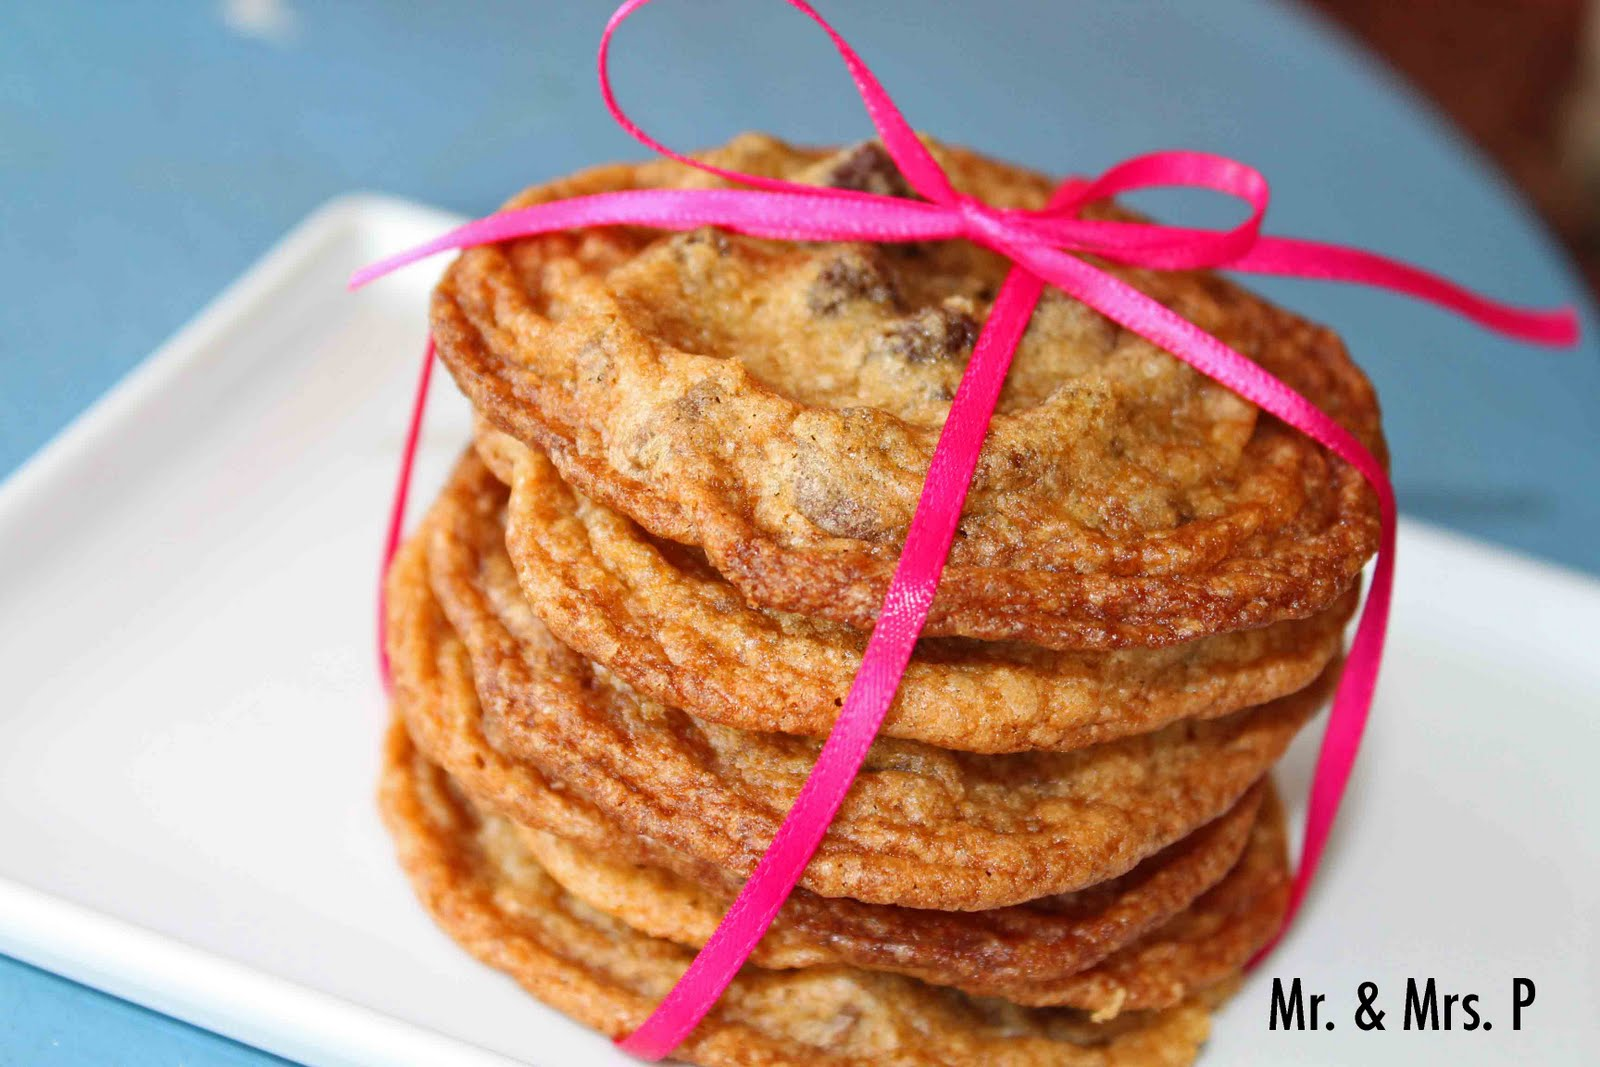 Mr. & Mrs. P: Thin and Crispy Chewy Chocolate Chip Cookies